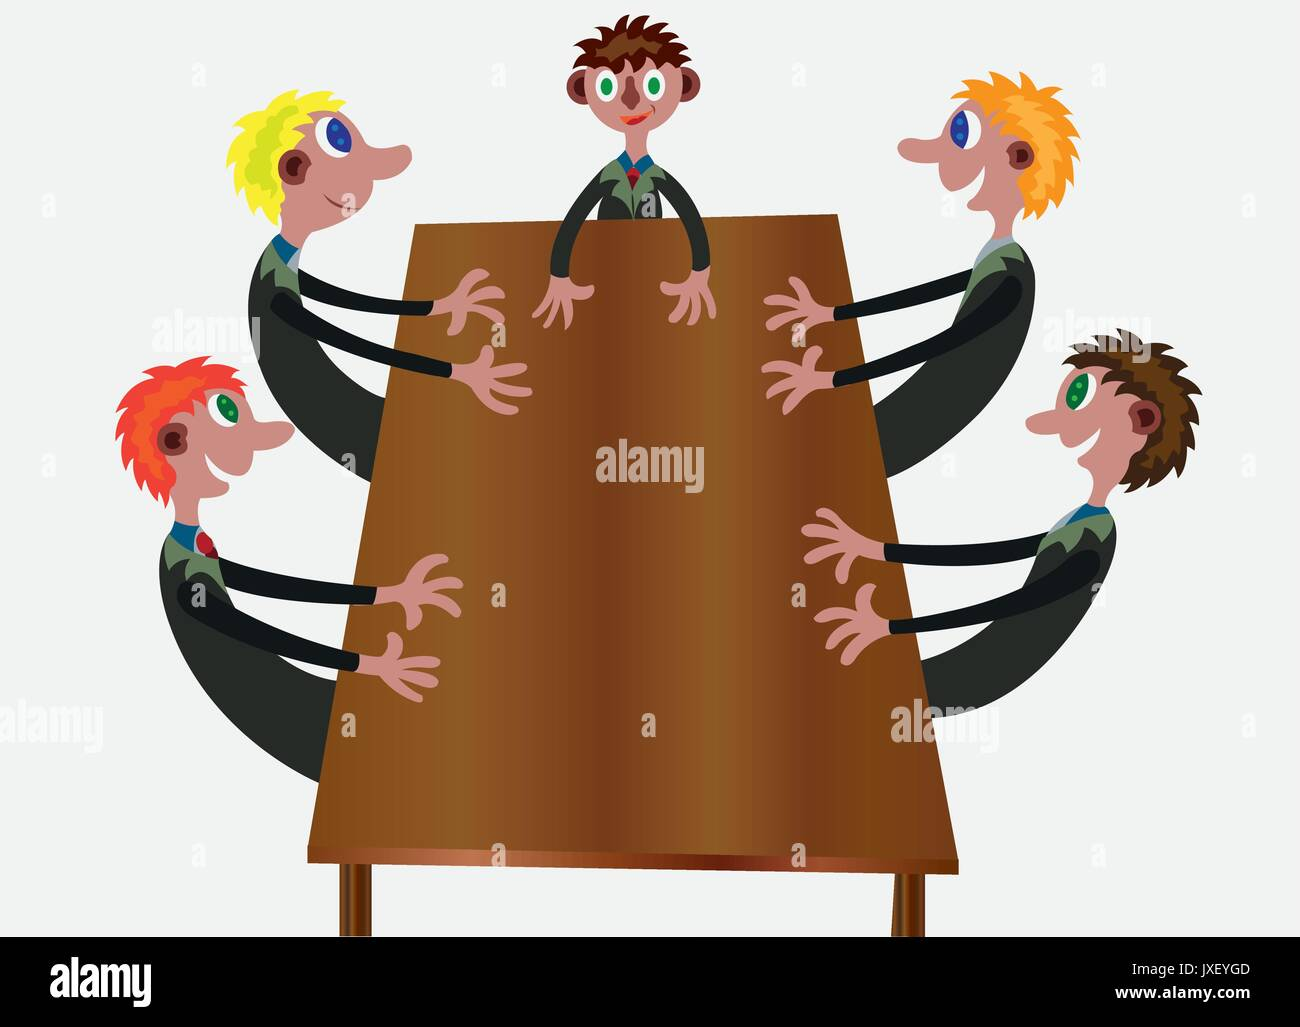 Board members in a meeting discussing important issues - Stock Vector